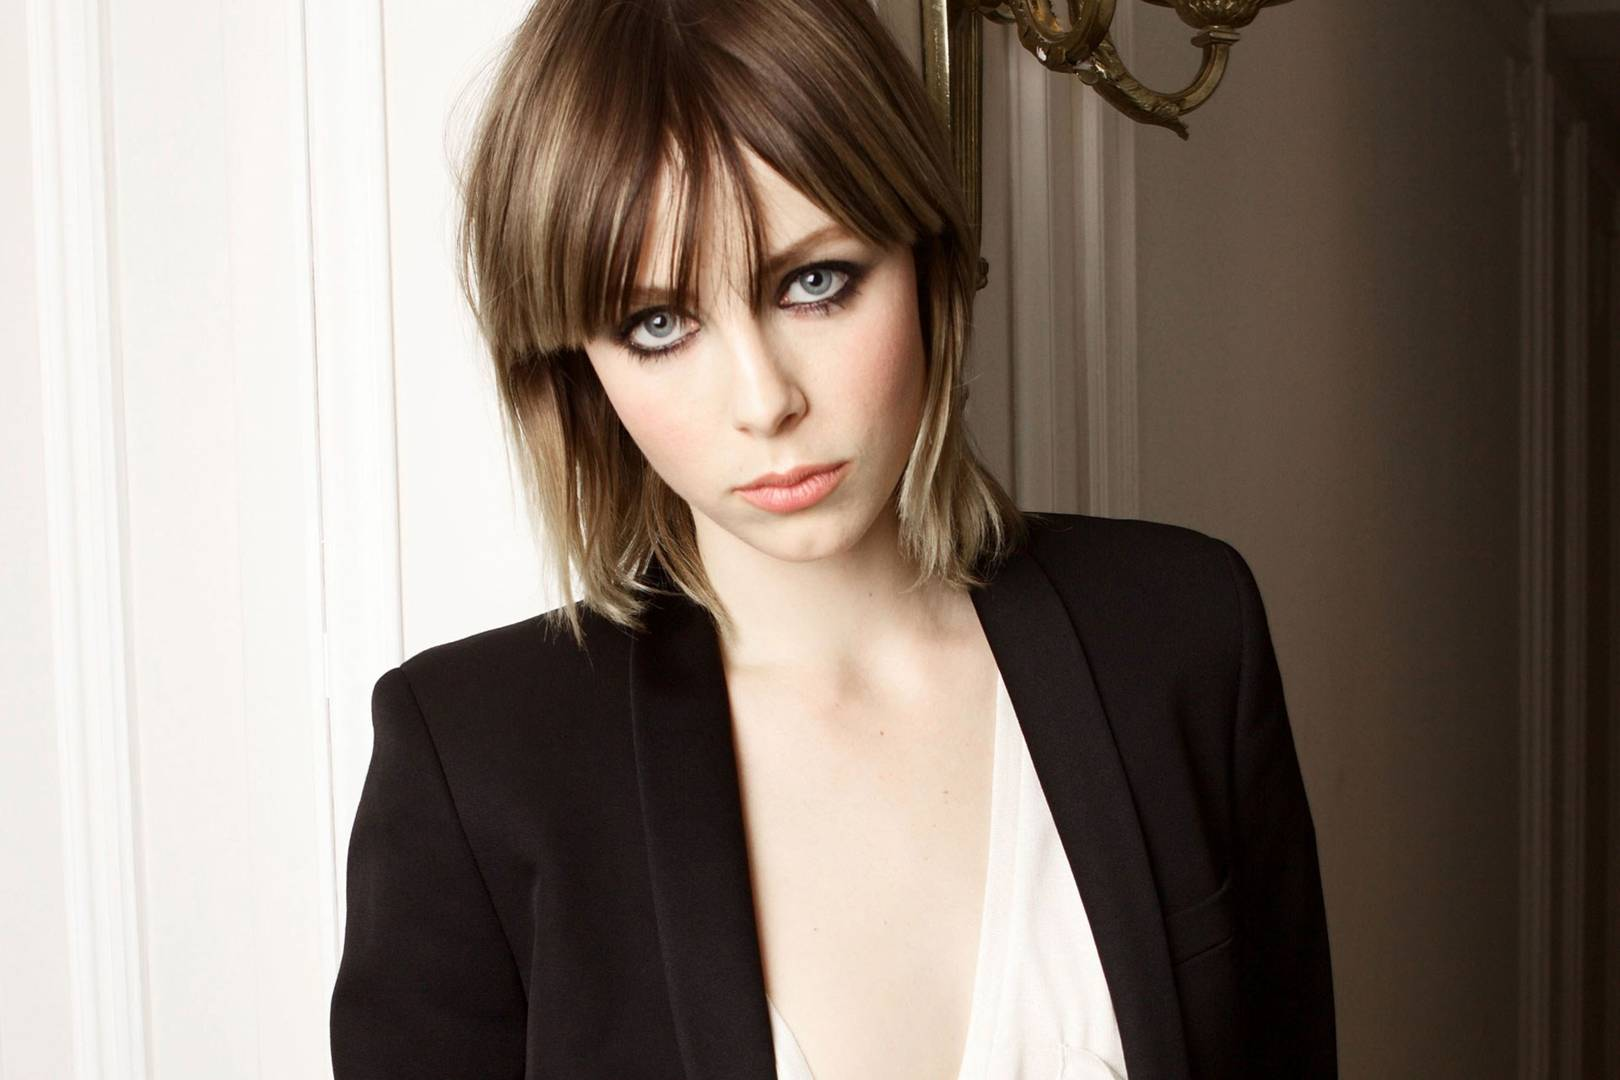 Pics Edie Campbell nudes (72 foto and video), Tits, Paparazzi, Boobs, bra 2018